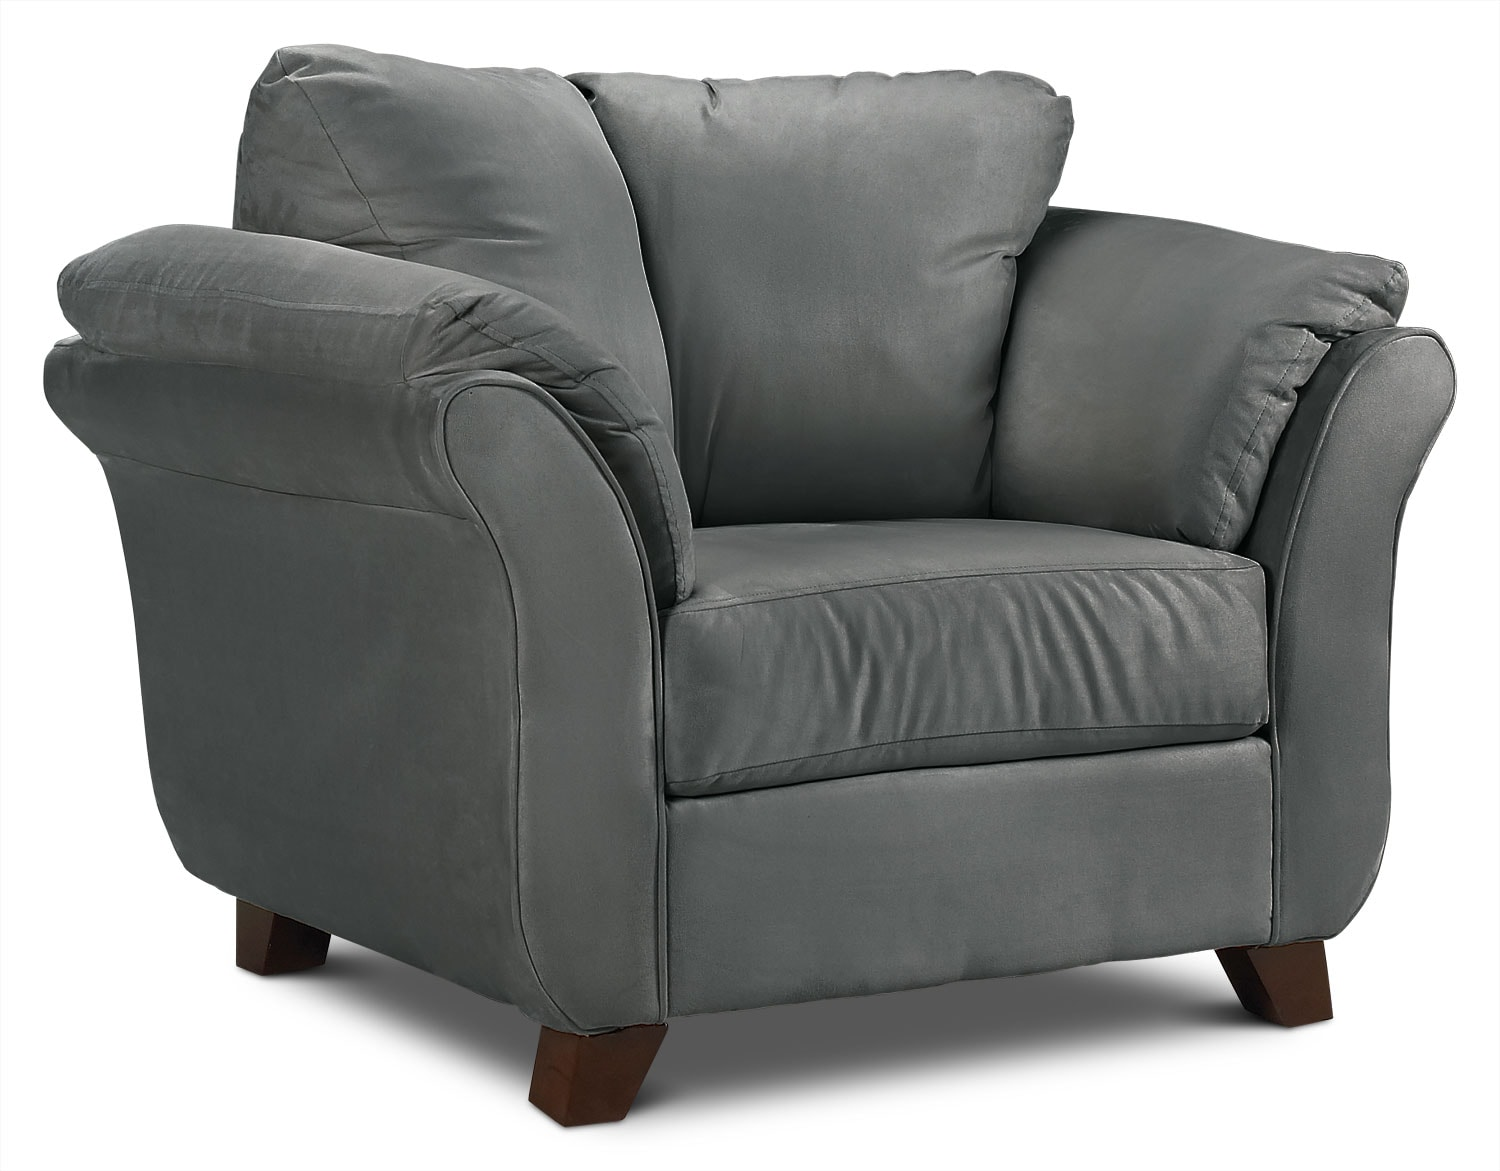 Living Room Furniture - Collier Chair - Dark Grey